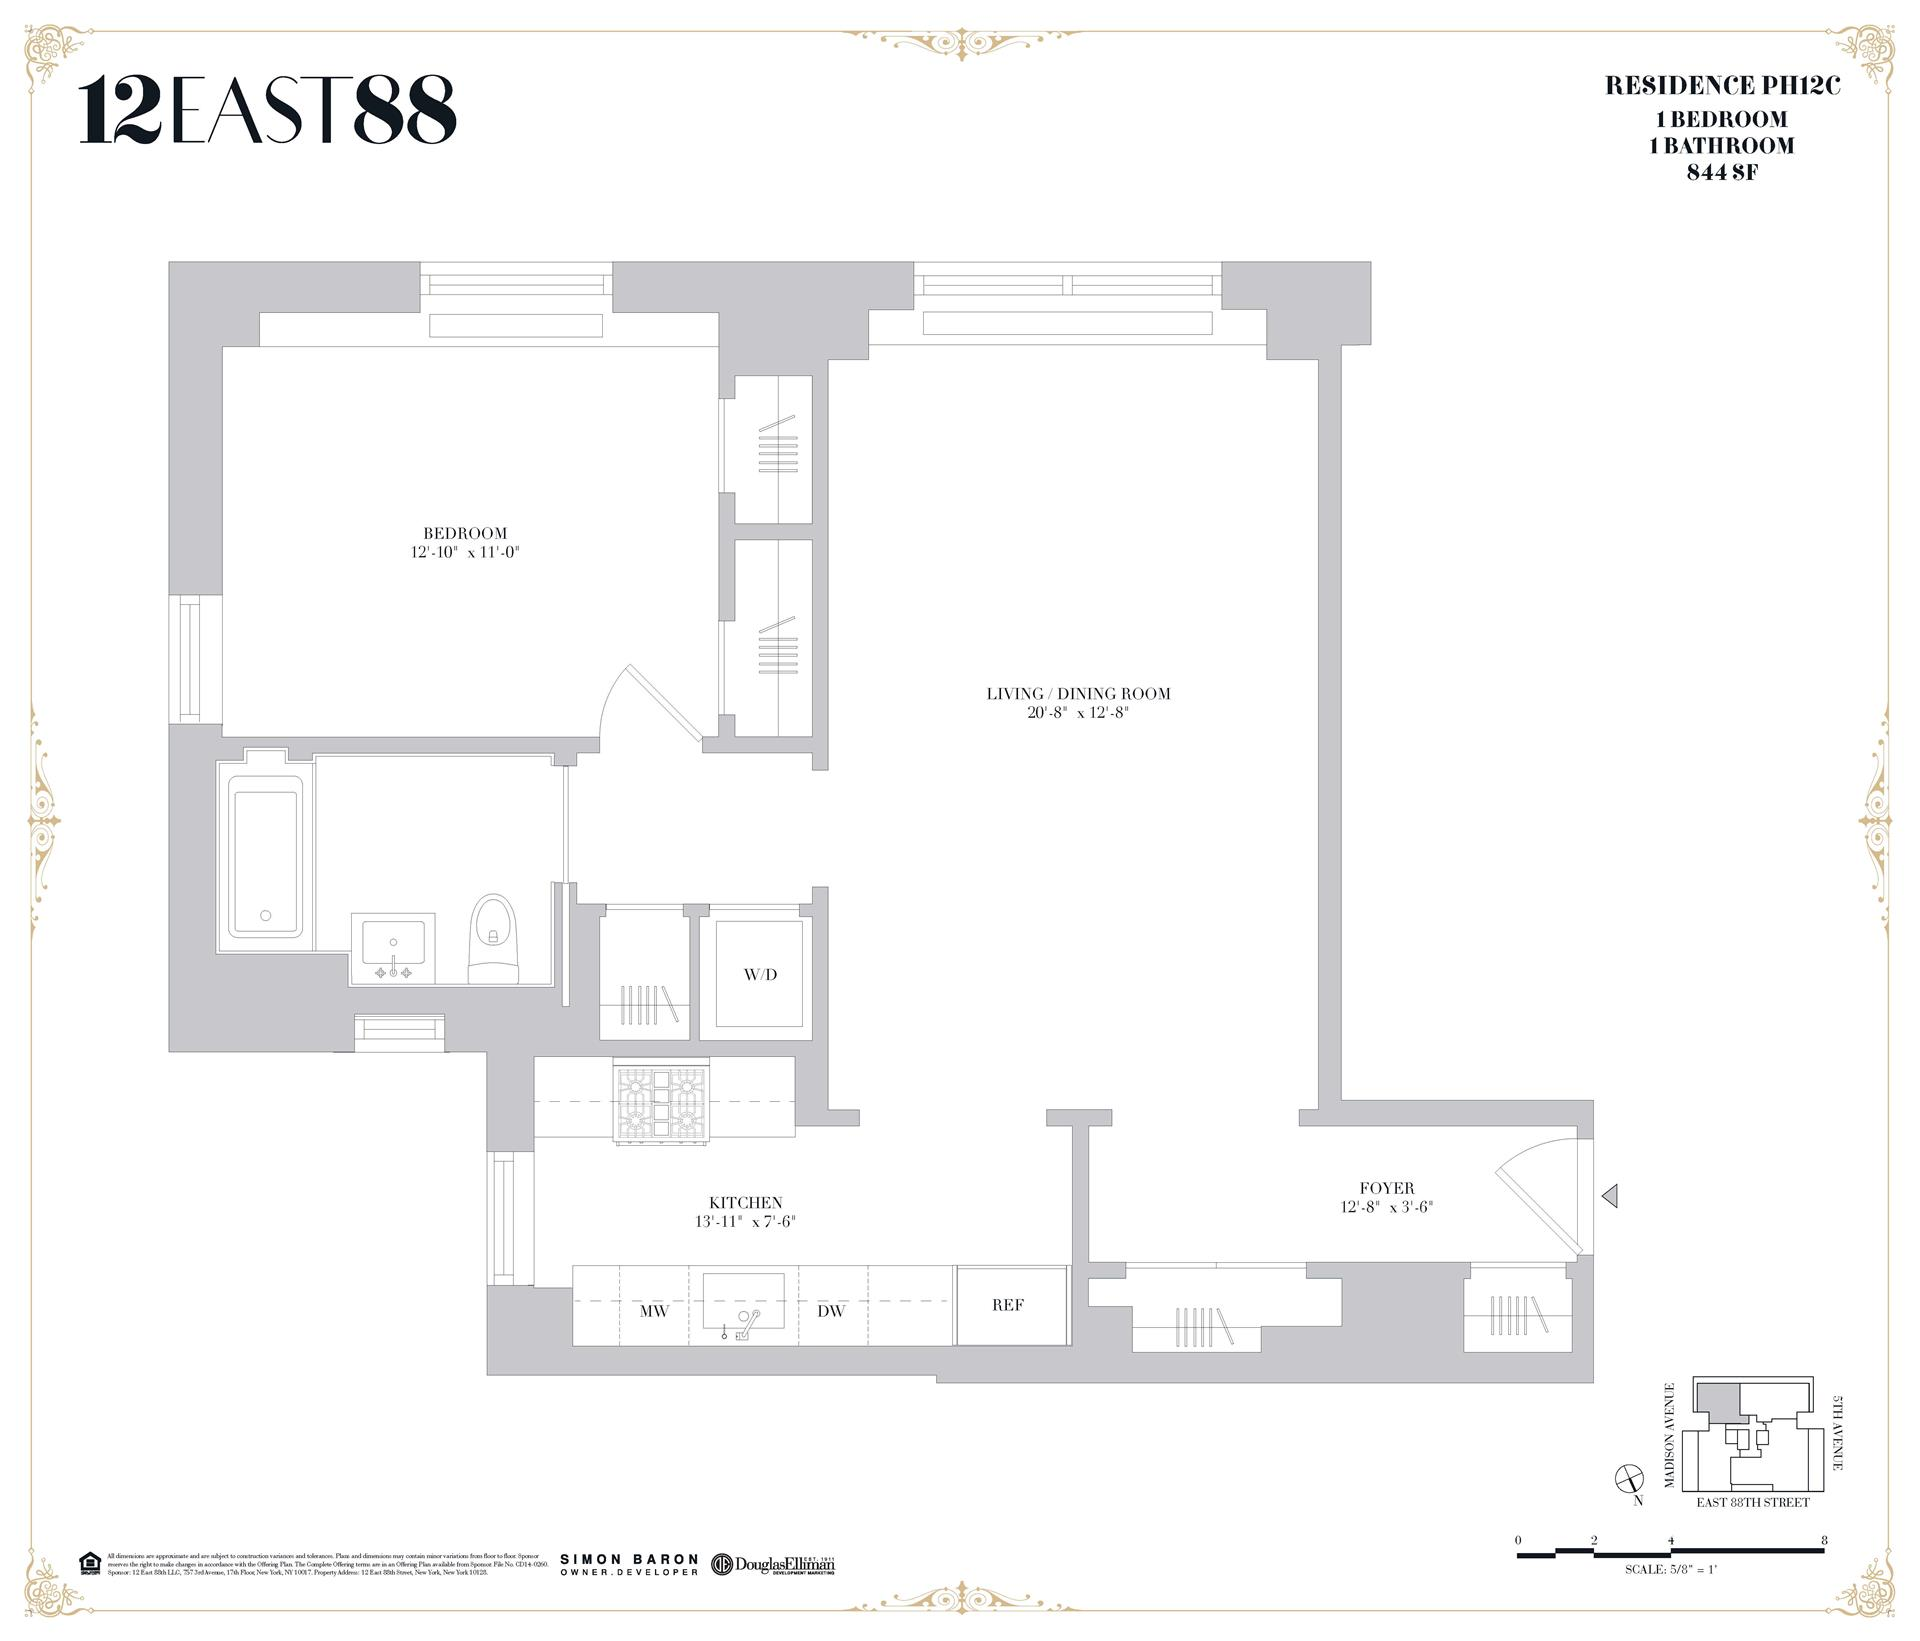 Floor plan of 12 East 88th St, PHC - Carnegie Hill, New York